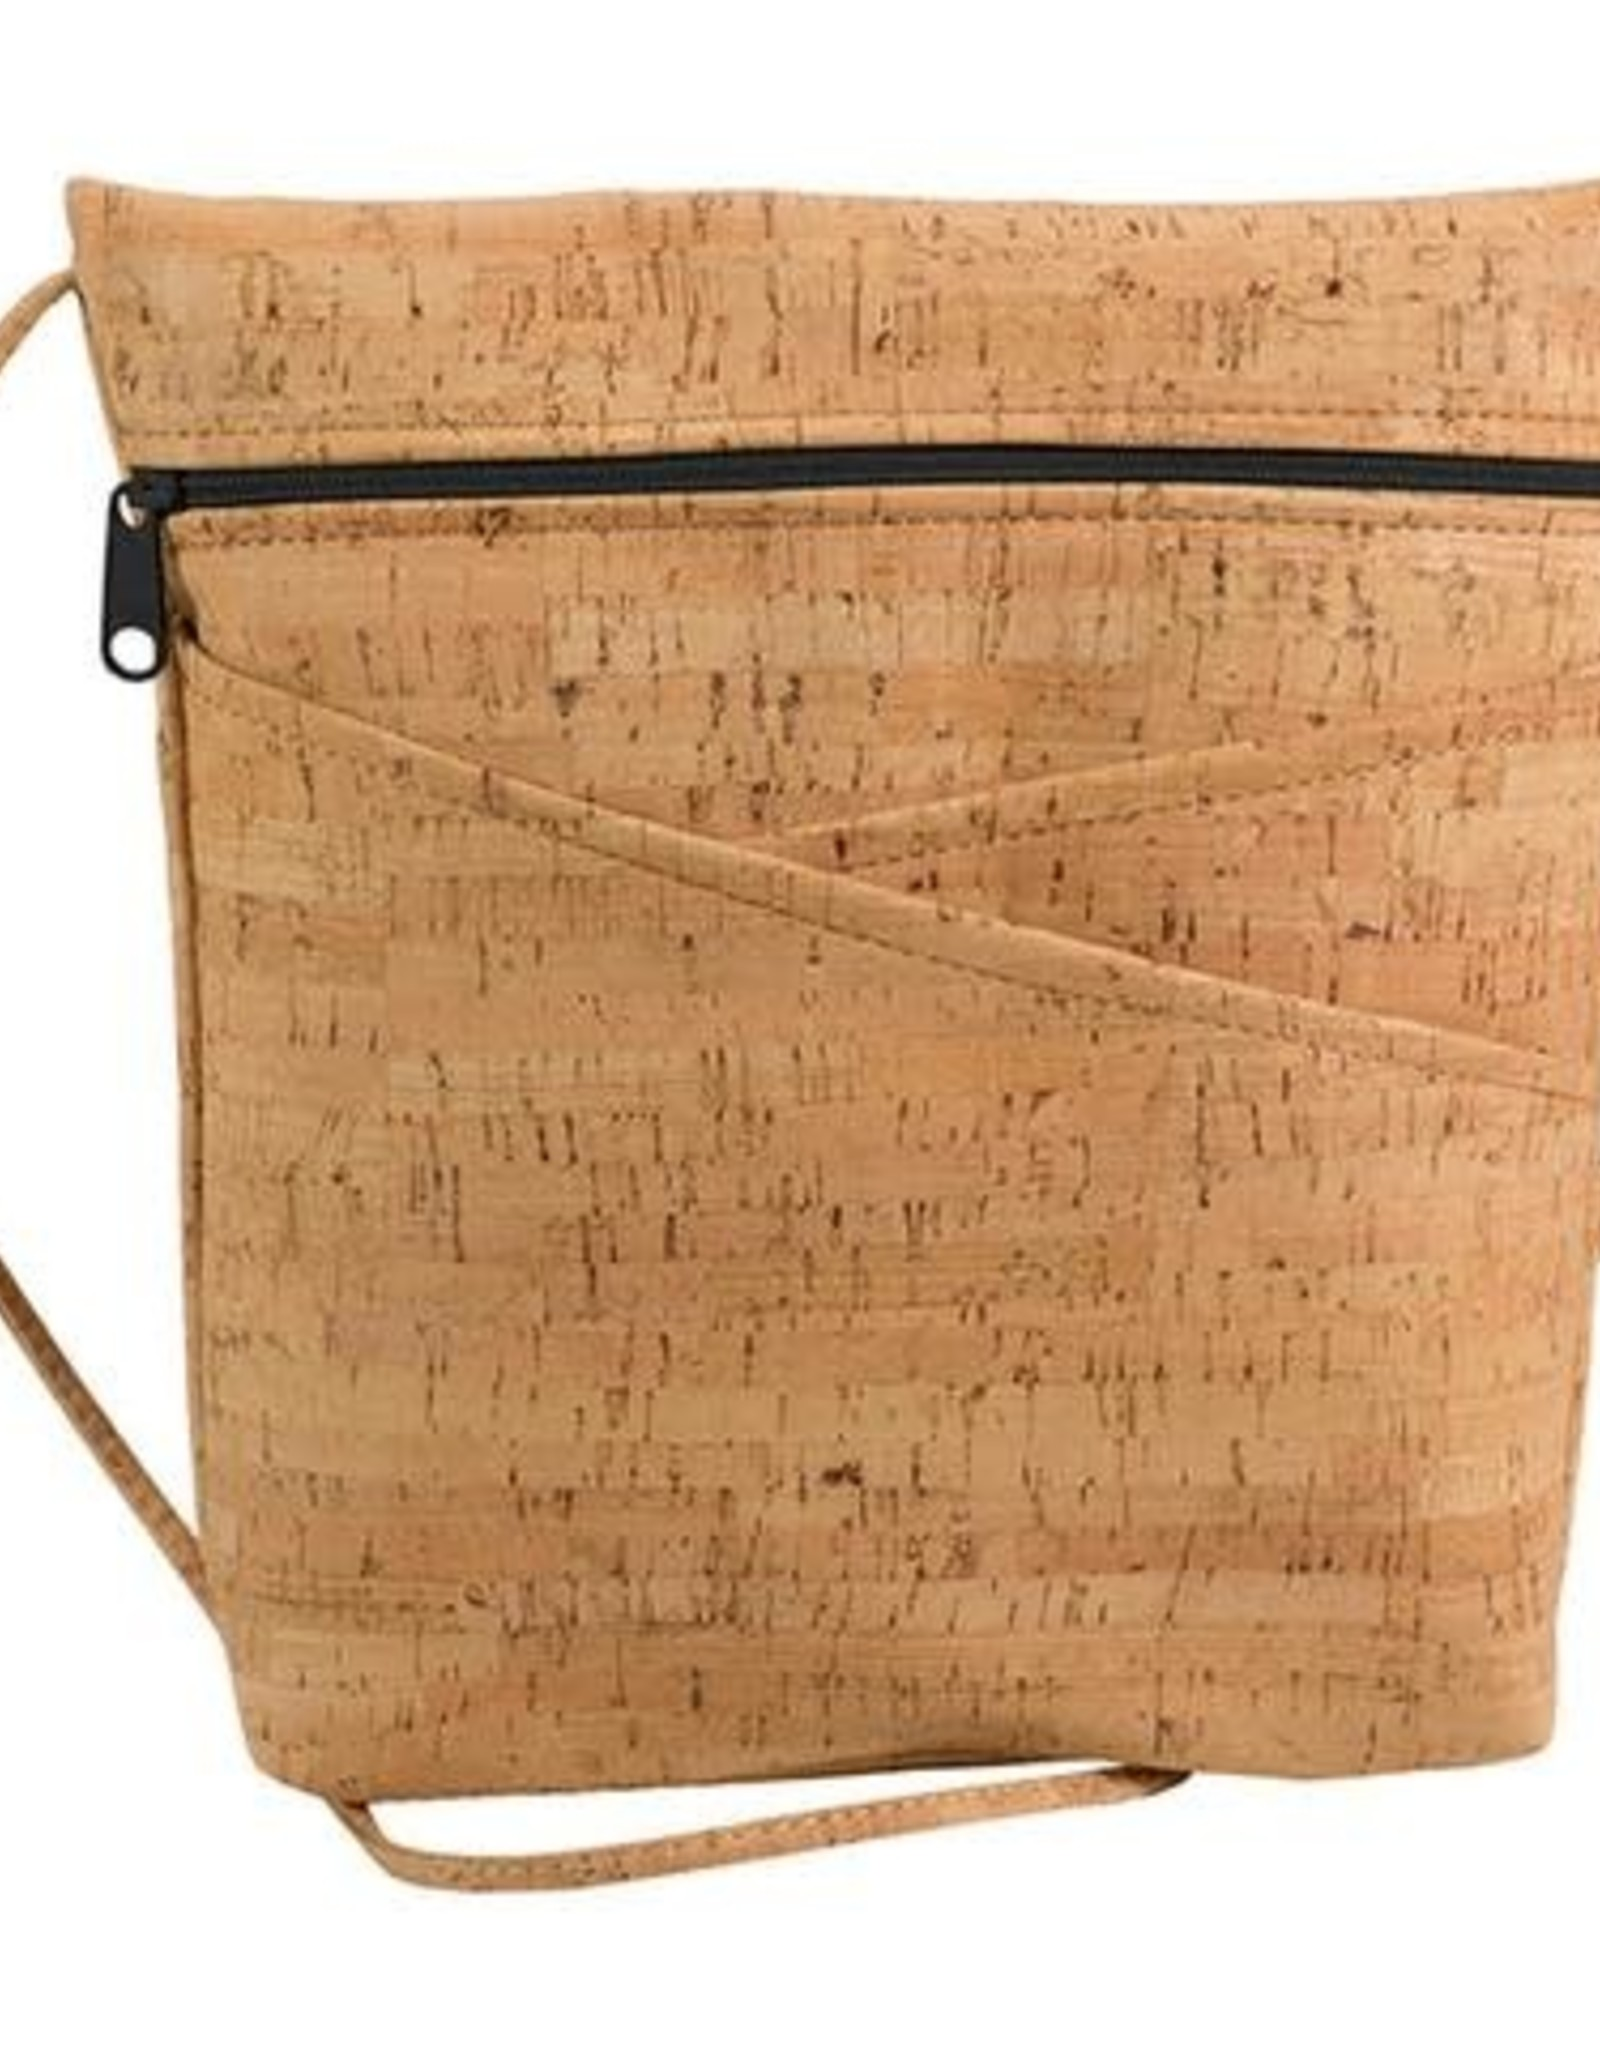 Natalie Therese Lively 3 Cork Criss-Crossbody Bag